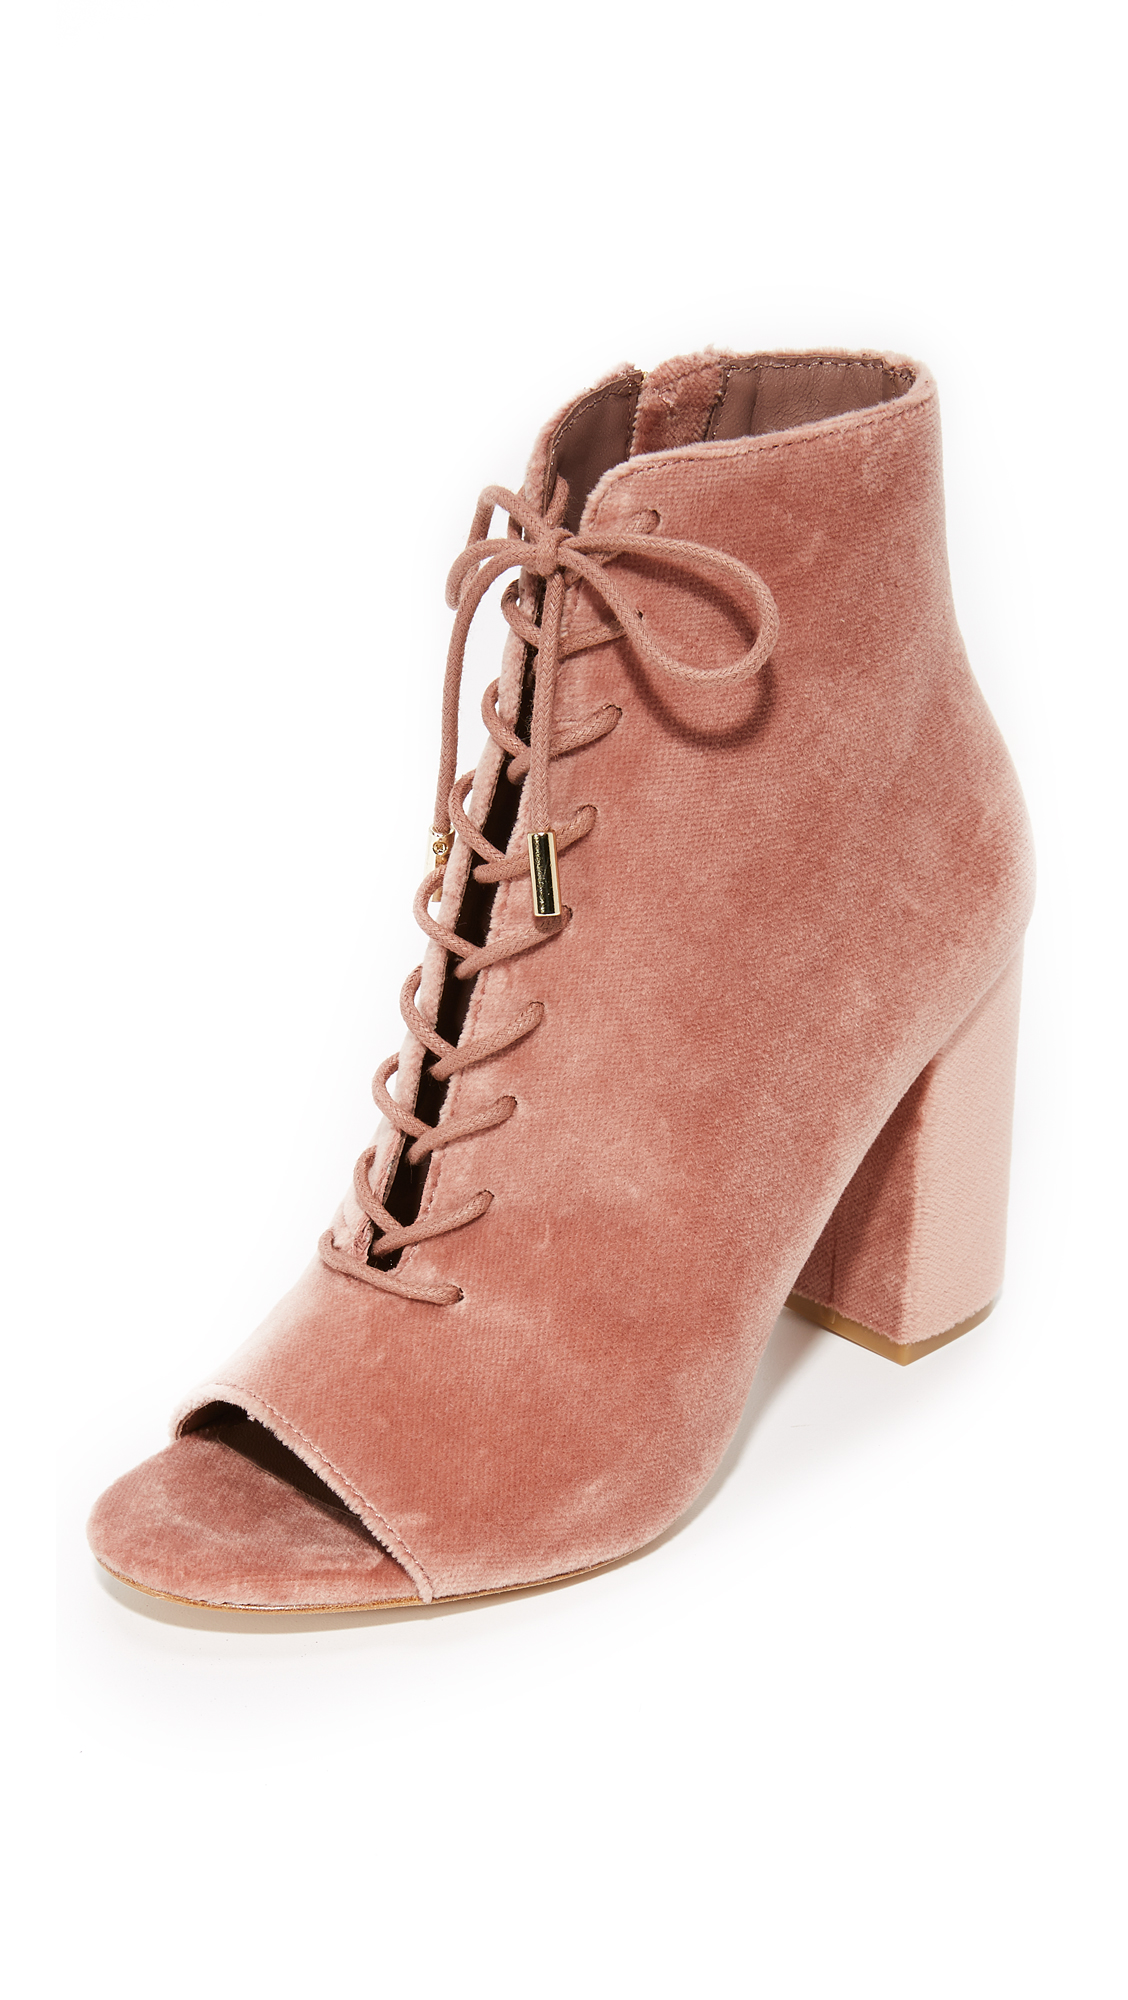 Joie Lakia Peep Toe Booties - Light Mauve